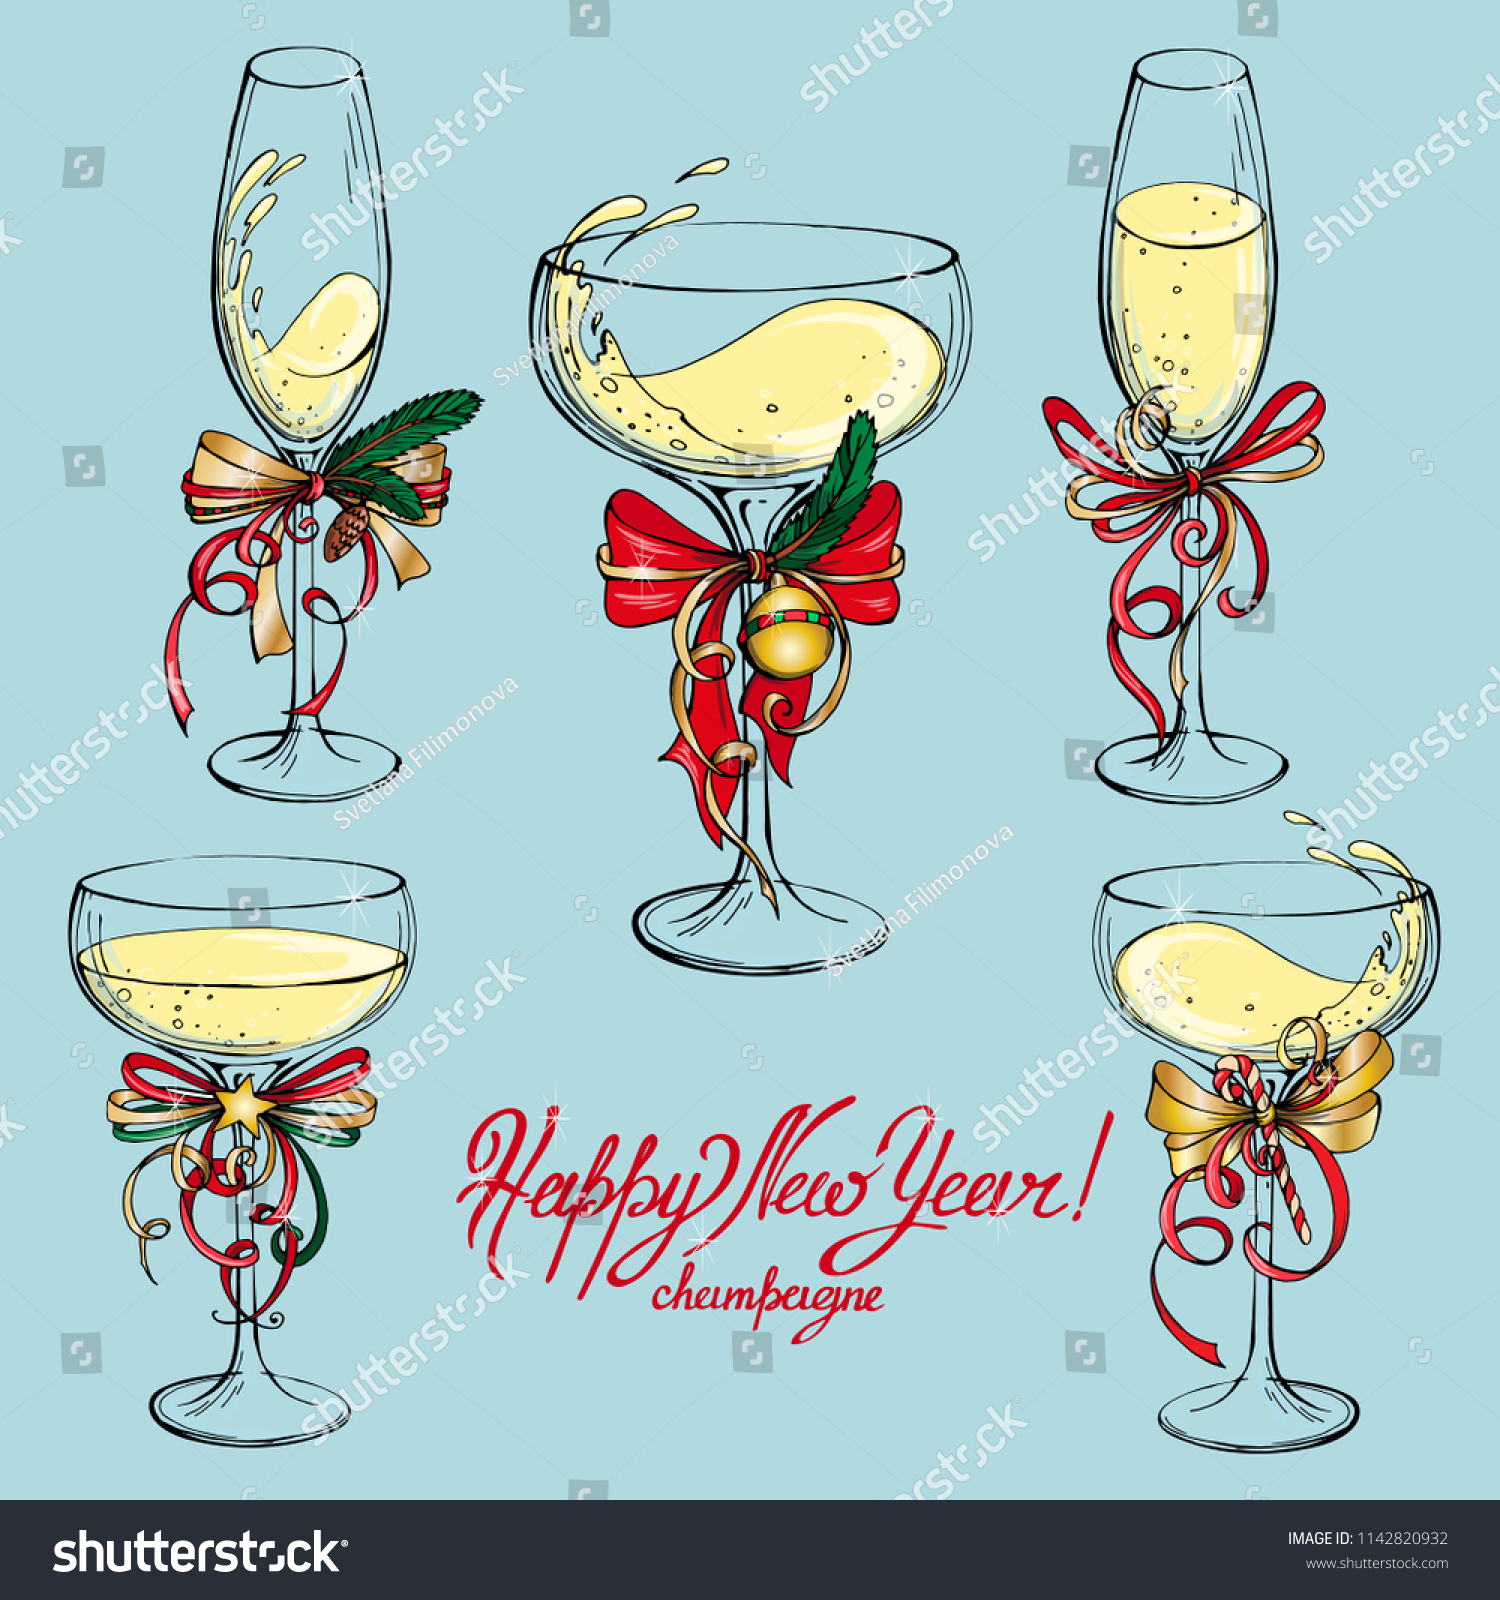 vector set of champagne glasses with new year decor and words champagne happy new